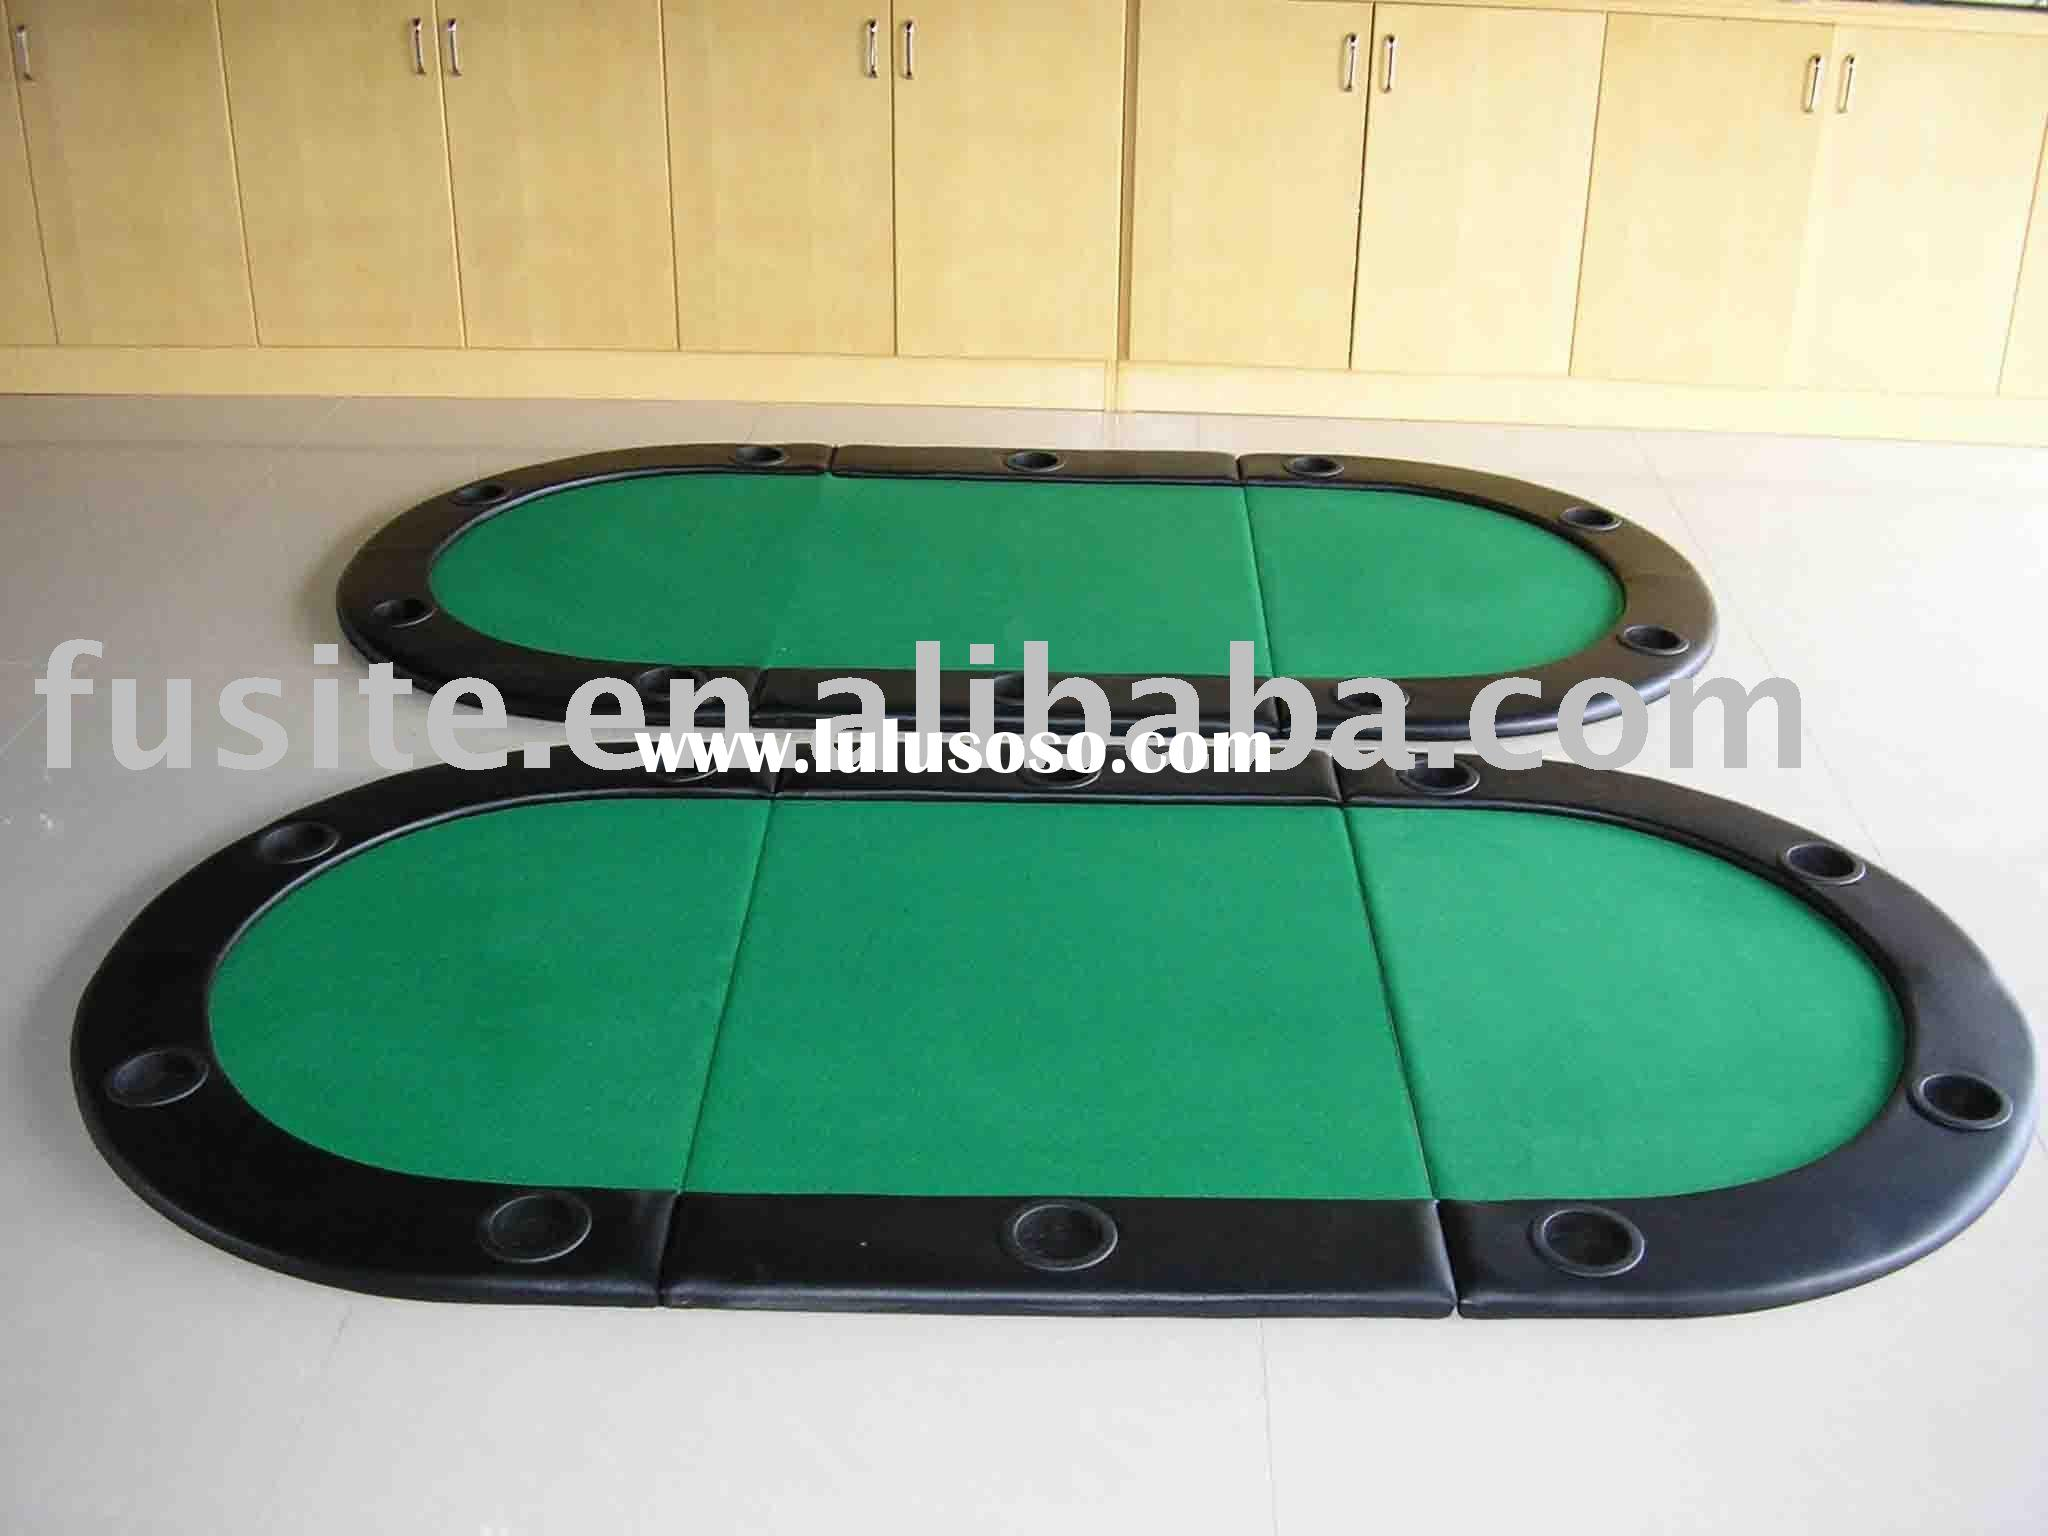 Poker Table Folding, Poker Table Folding Manufacturers In LuLuSoSo.com    Page 1